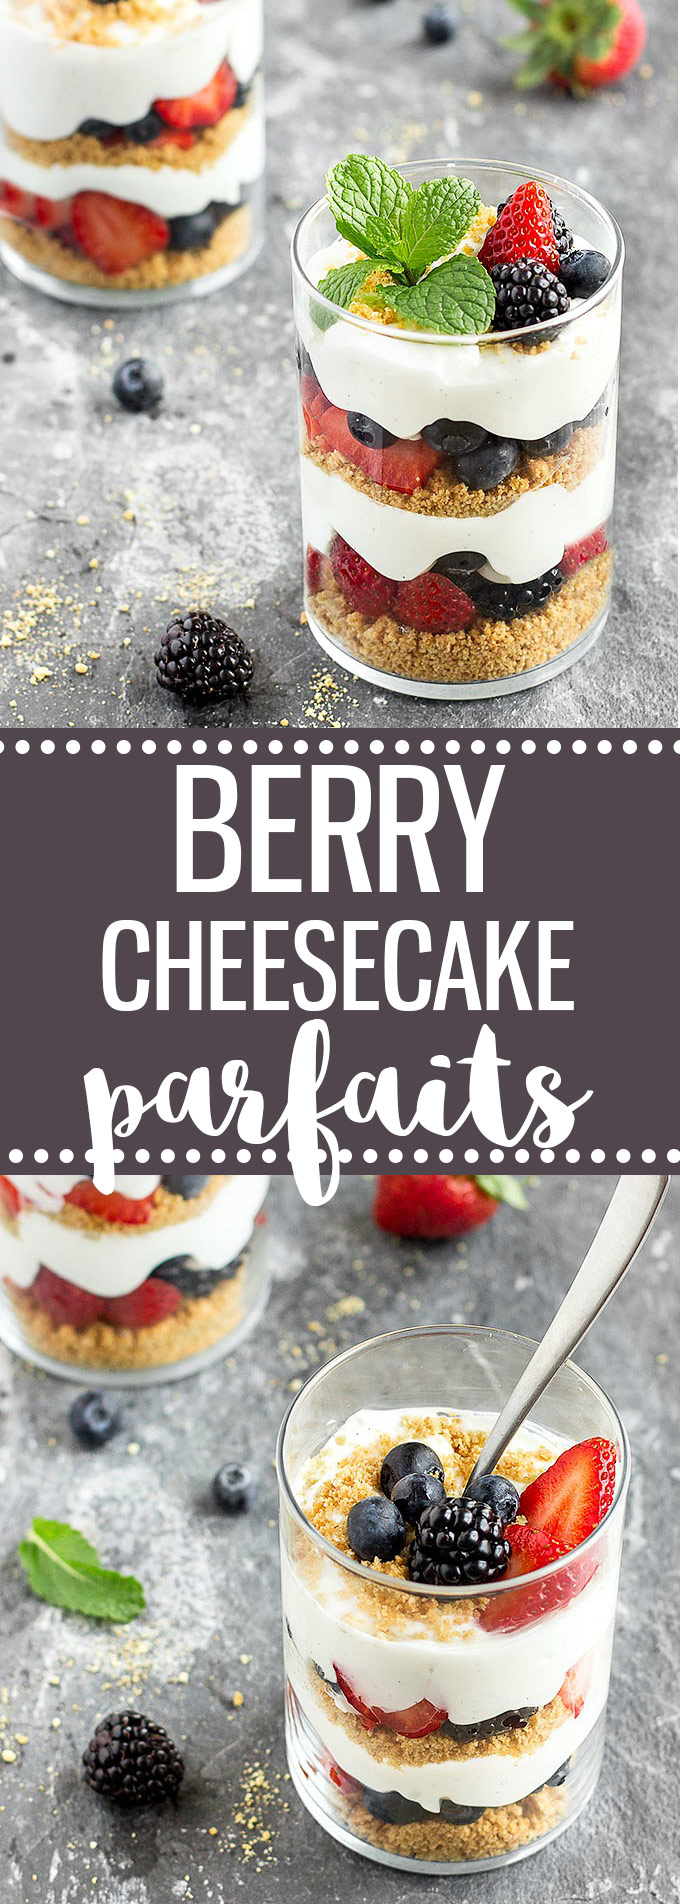 If you are looking for an easy, quick, and no-bake dessert, try these lighten-up Berry Cheesecake Parfaits. #lightenup #cheesecake #dessert #parfait #berries #easyrecipe | aseasyasapplepie.com